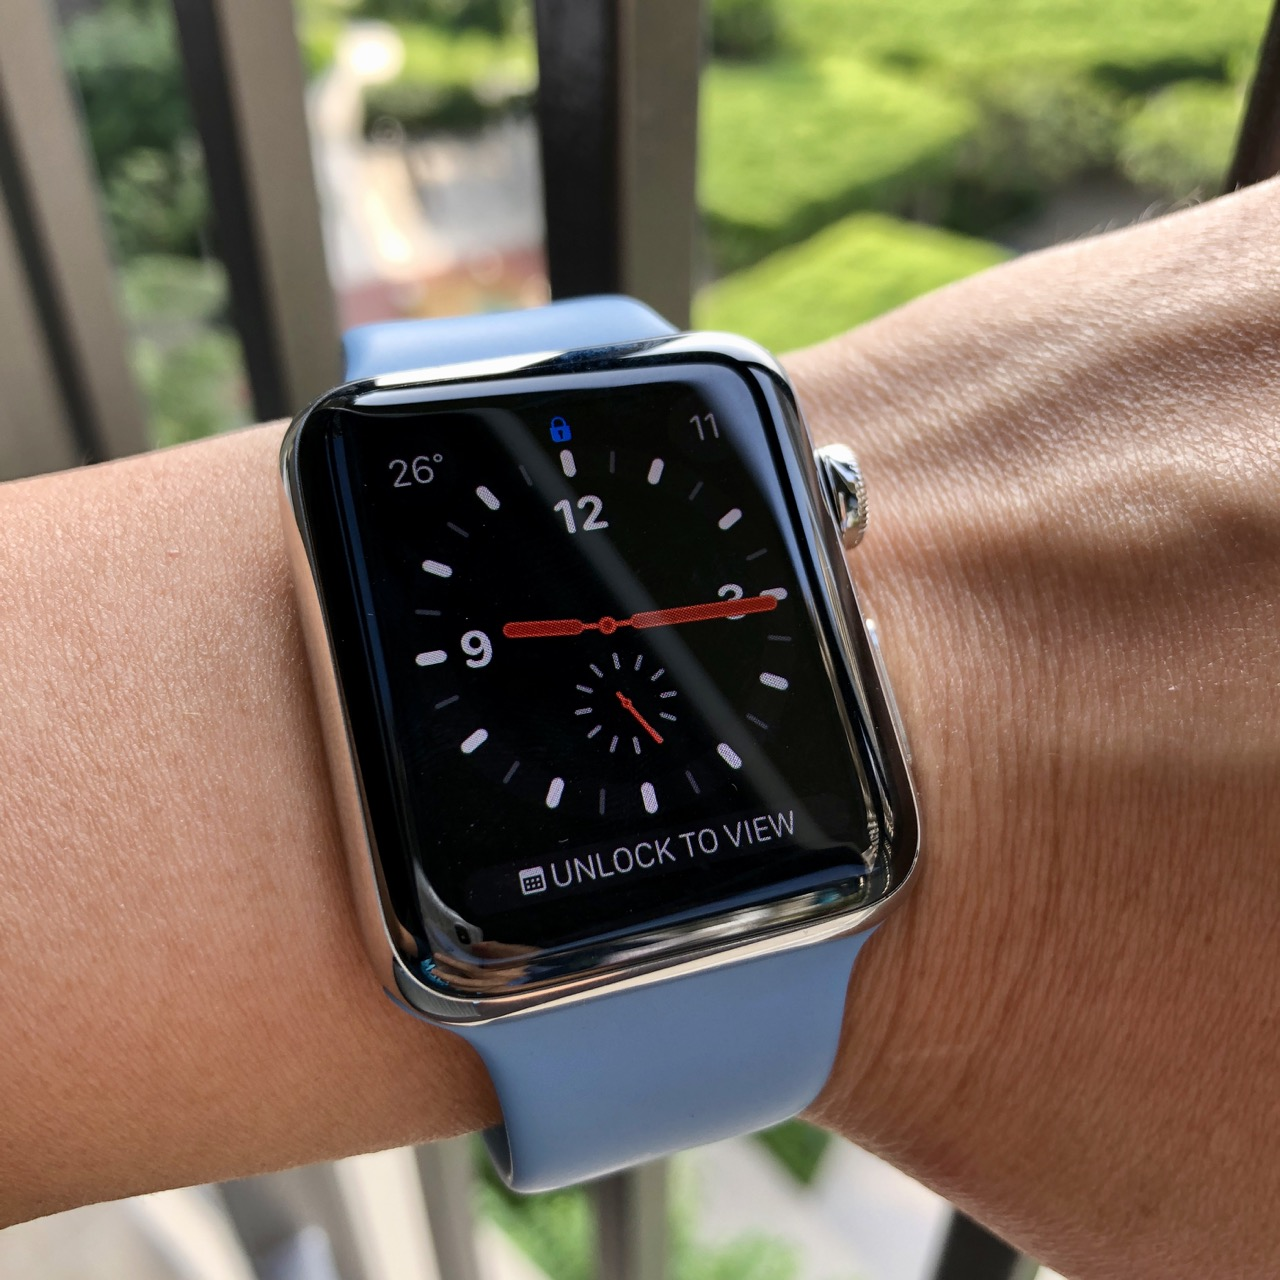 Question: Q: do you have to use cellular with Apple Watch 3